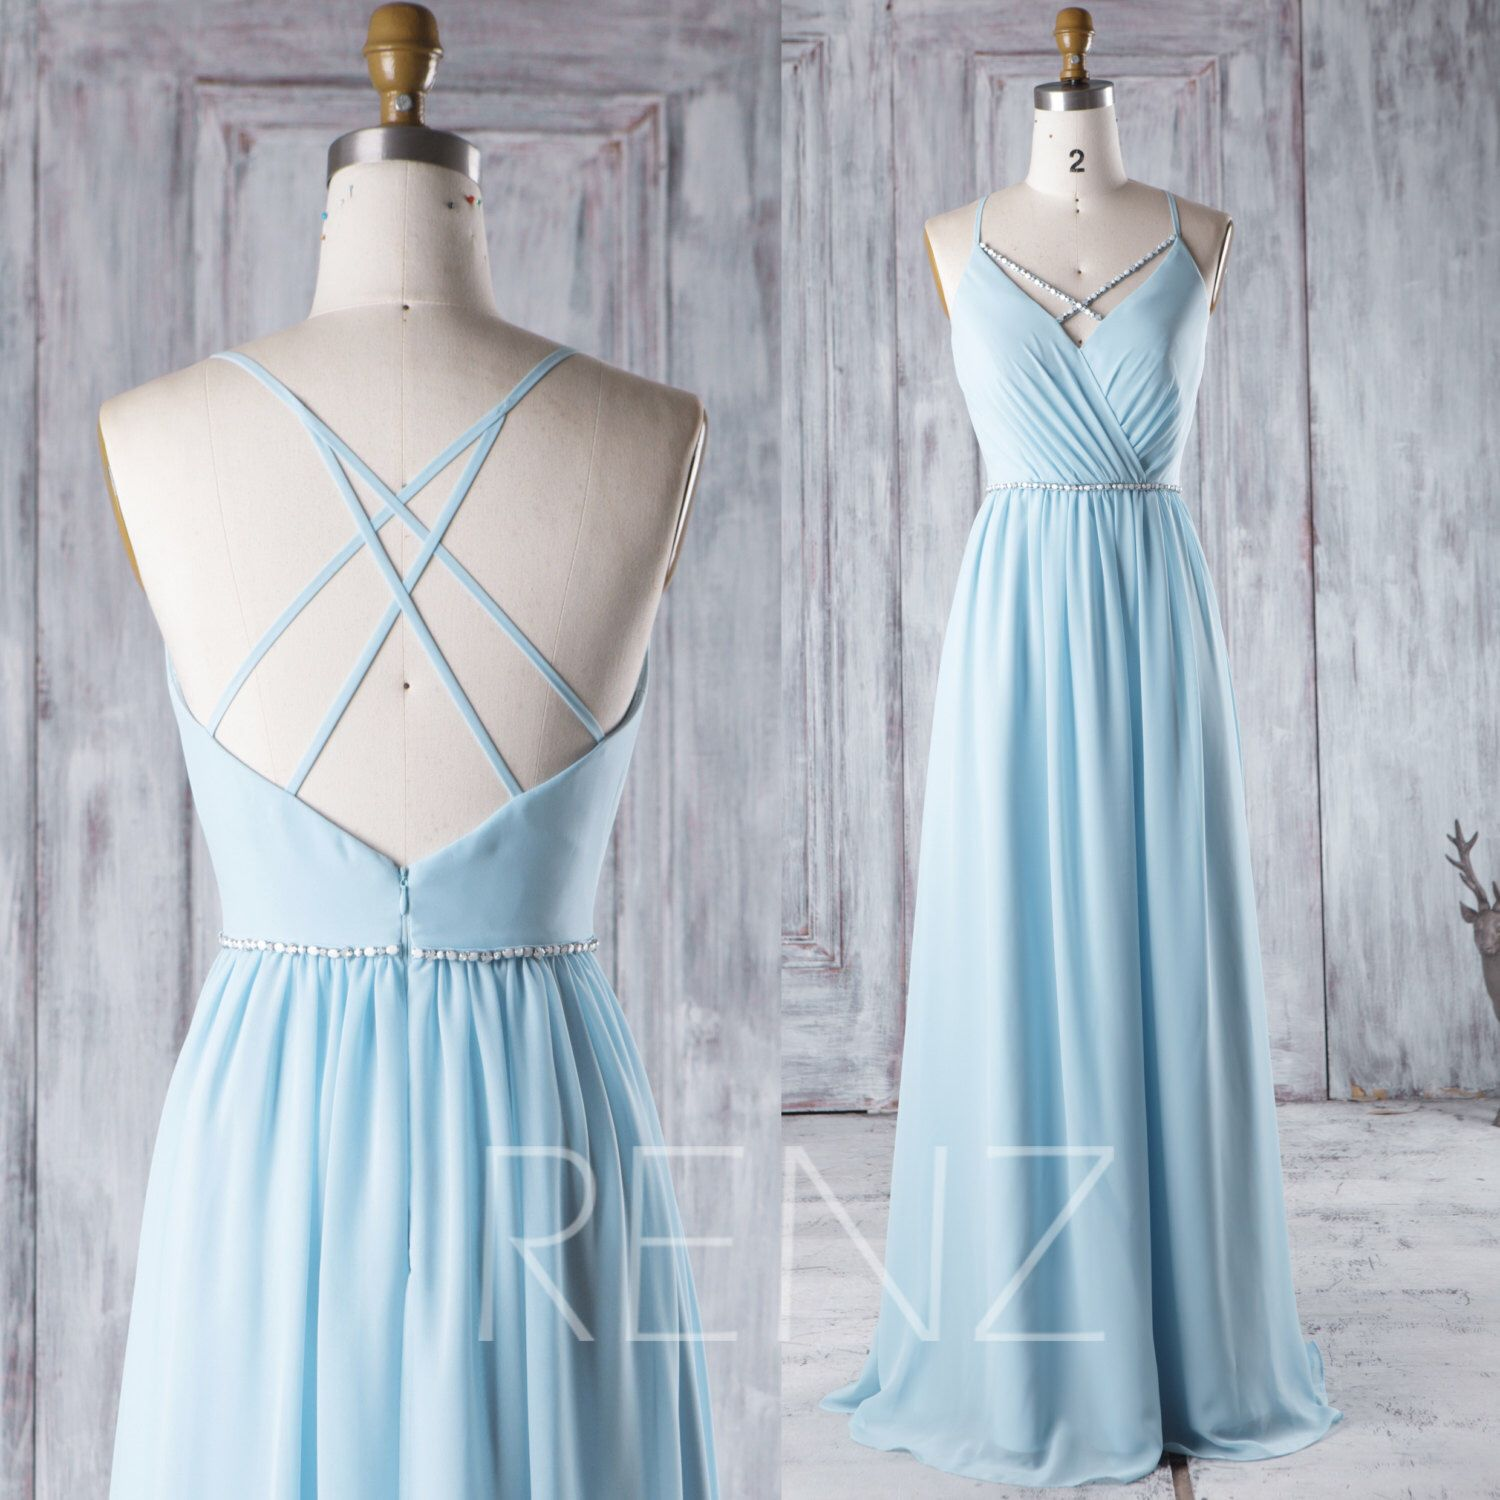 2016 Light Blue Chiffon Bridesmaid Dress with Beading, A Line Wedding Dress, Spaghetti Straps Prom Dress Open Back Floor Length (H291) by RenzRags on Etsy https://www.etsy.com/listing/459594240/2016-light-blue-chiffon-bridesmaid-dress